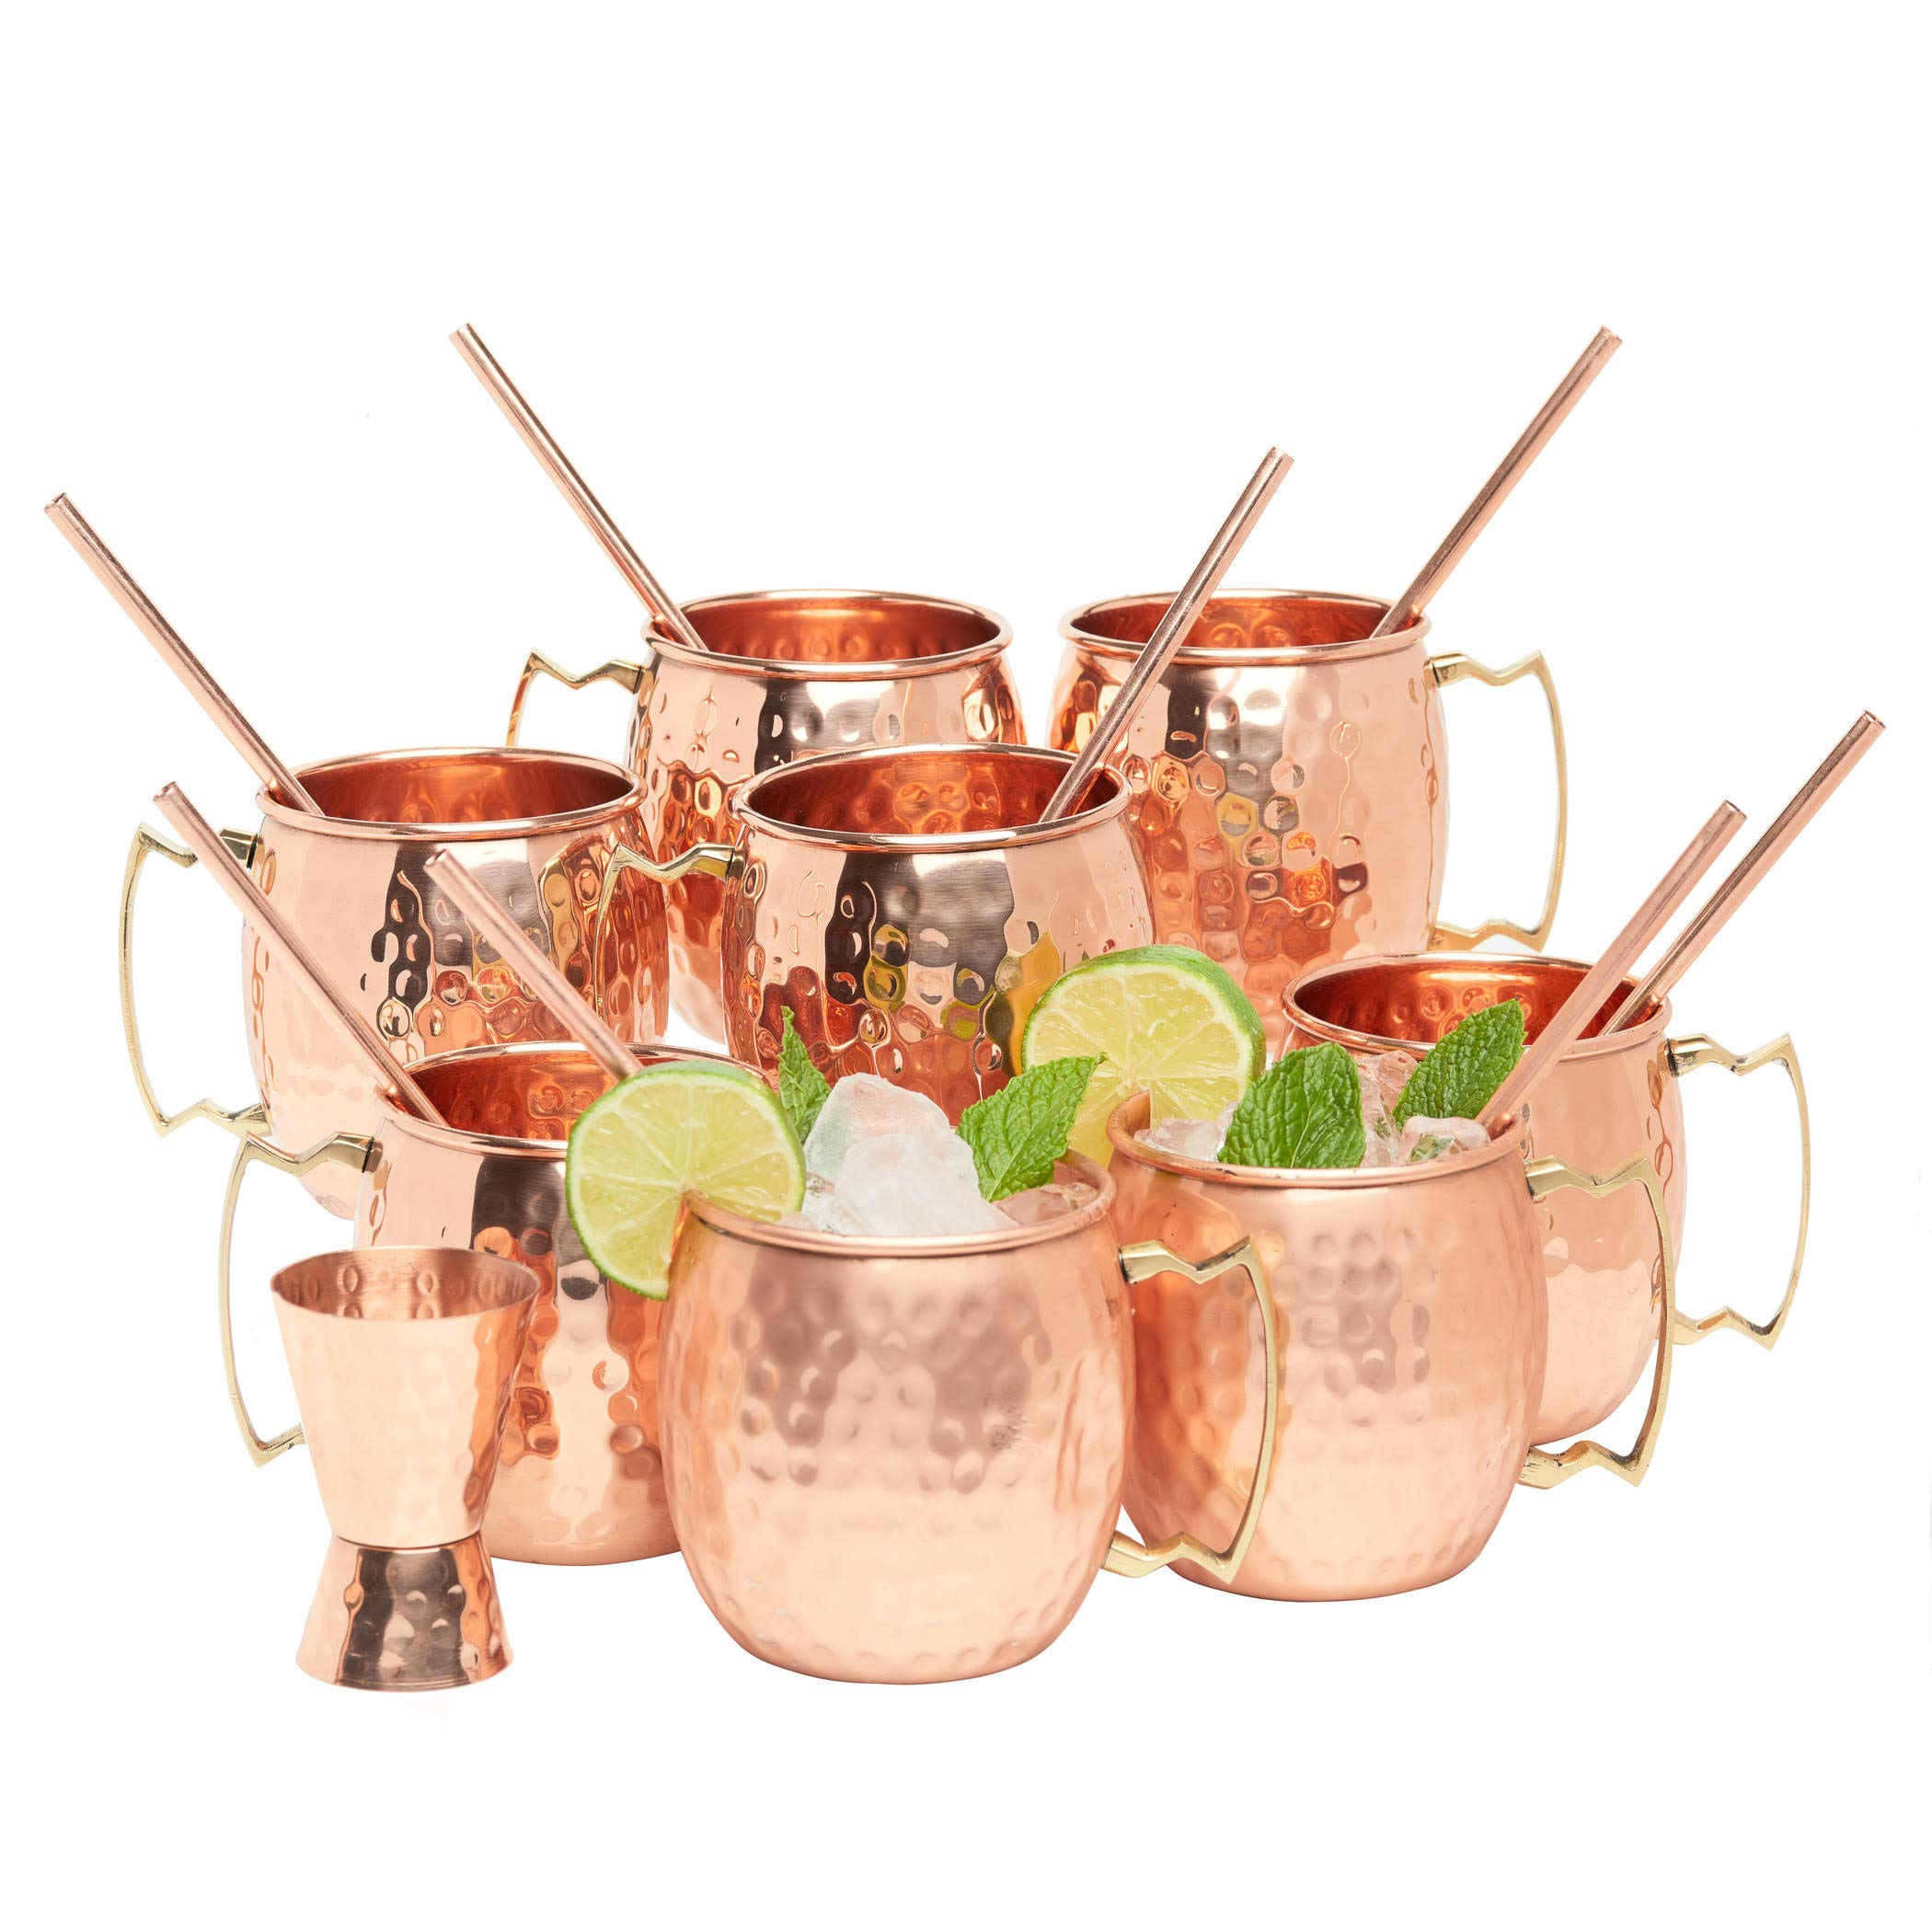 Kitchen Science Moscow Mule Copper Mugs 16 Ounce with 8 Straws and Jigger Set by Kitchen Science (Image #1)